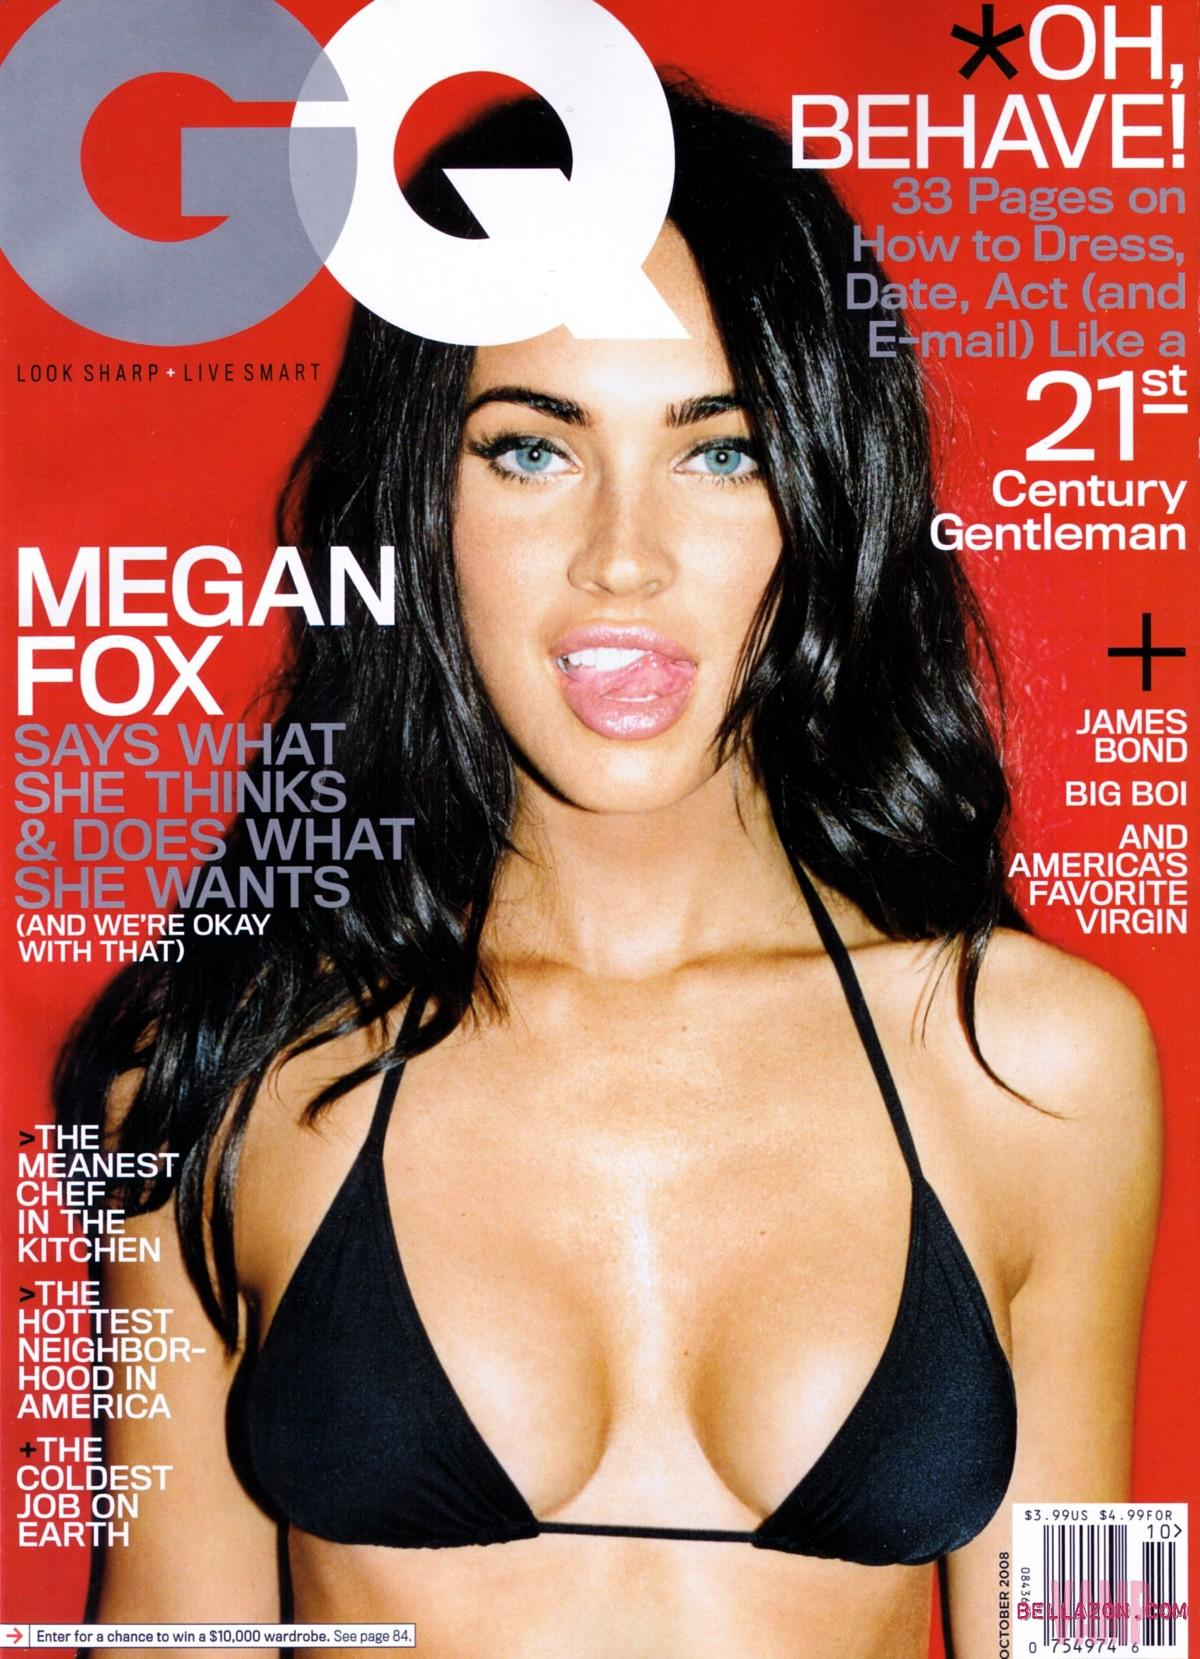 Megan Fox putalocura